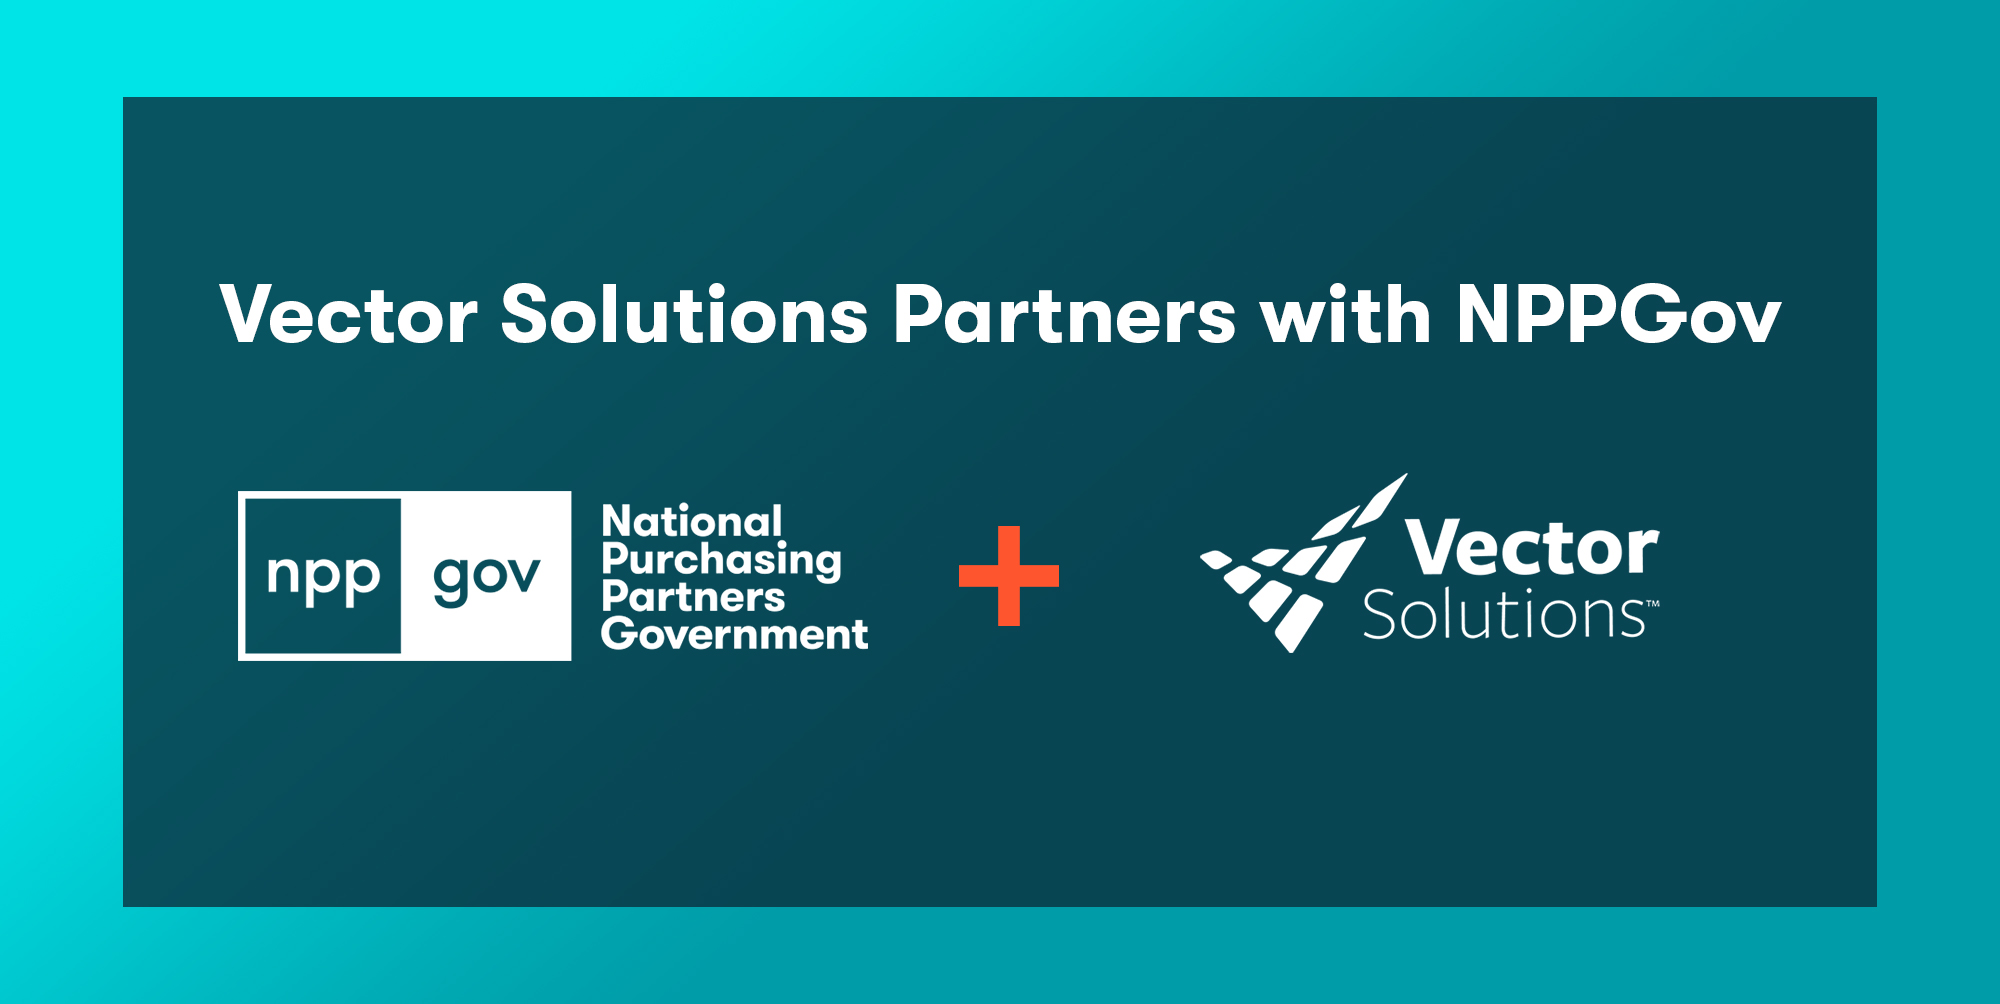 Vector Solutions Partners with NPPGov